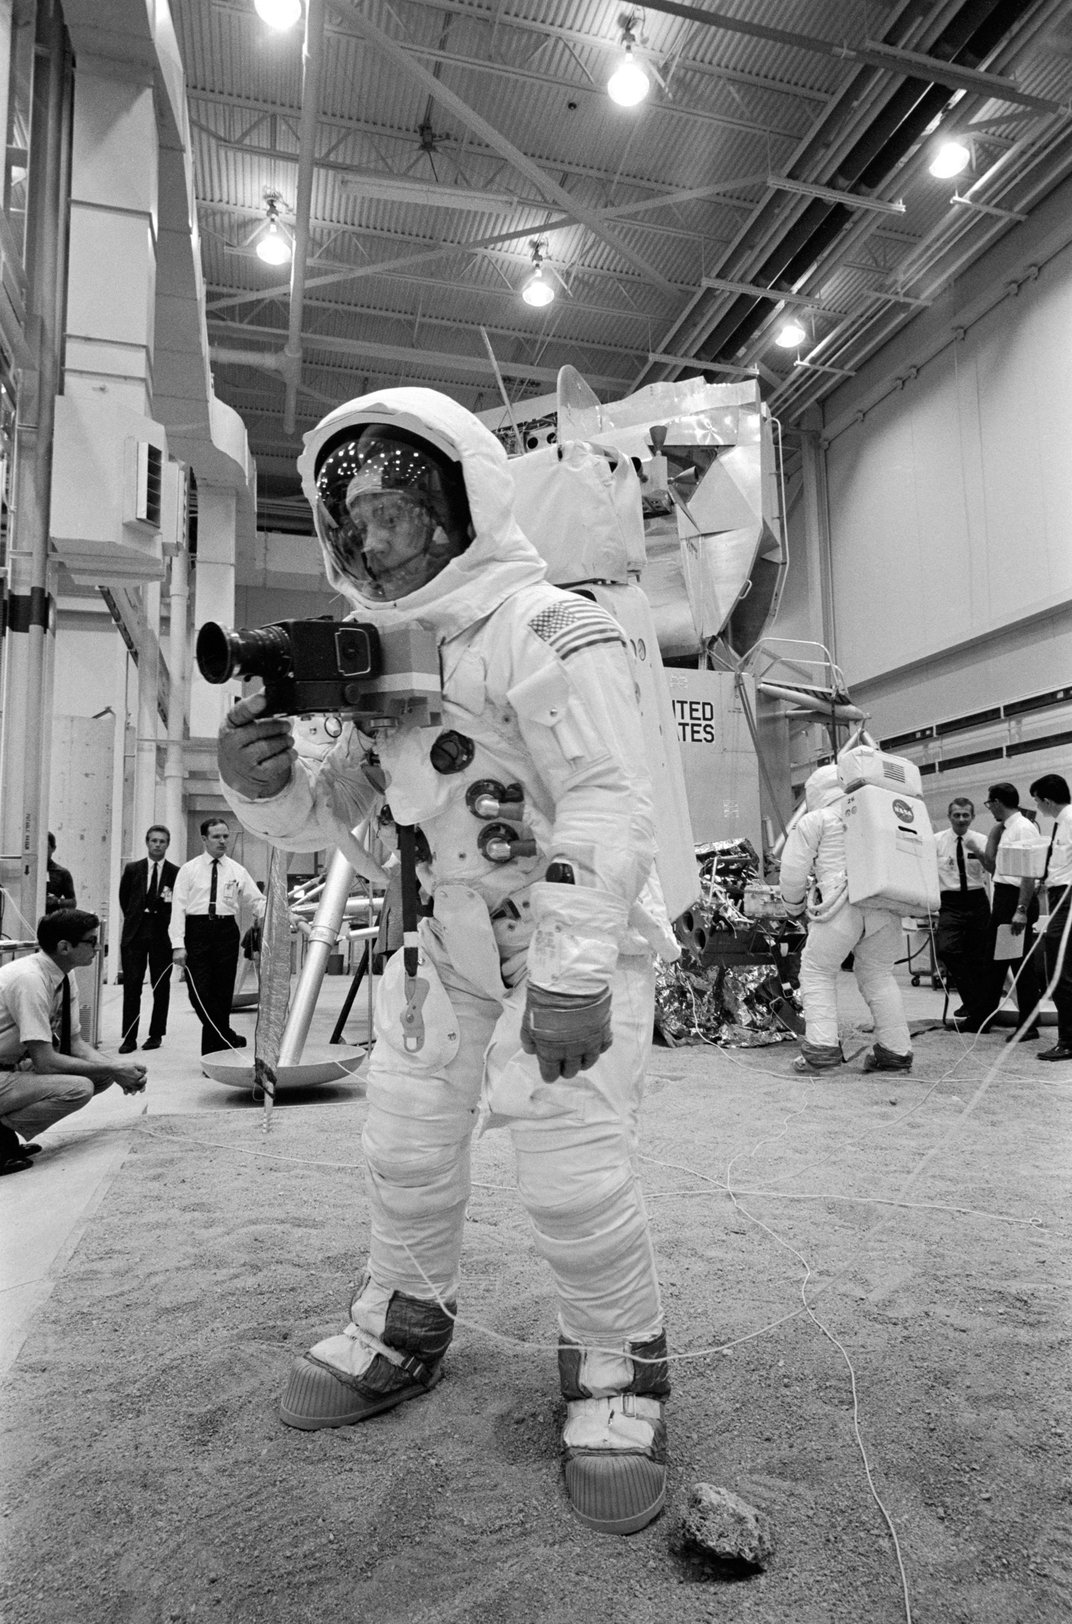 At 21, Ann Montgomery Became a Lead Engineer at NASA, Managing the Cameras and Other Crucial Gear Used on the Moon